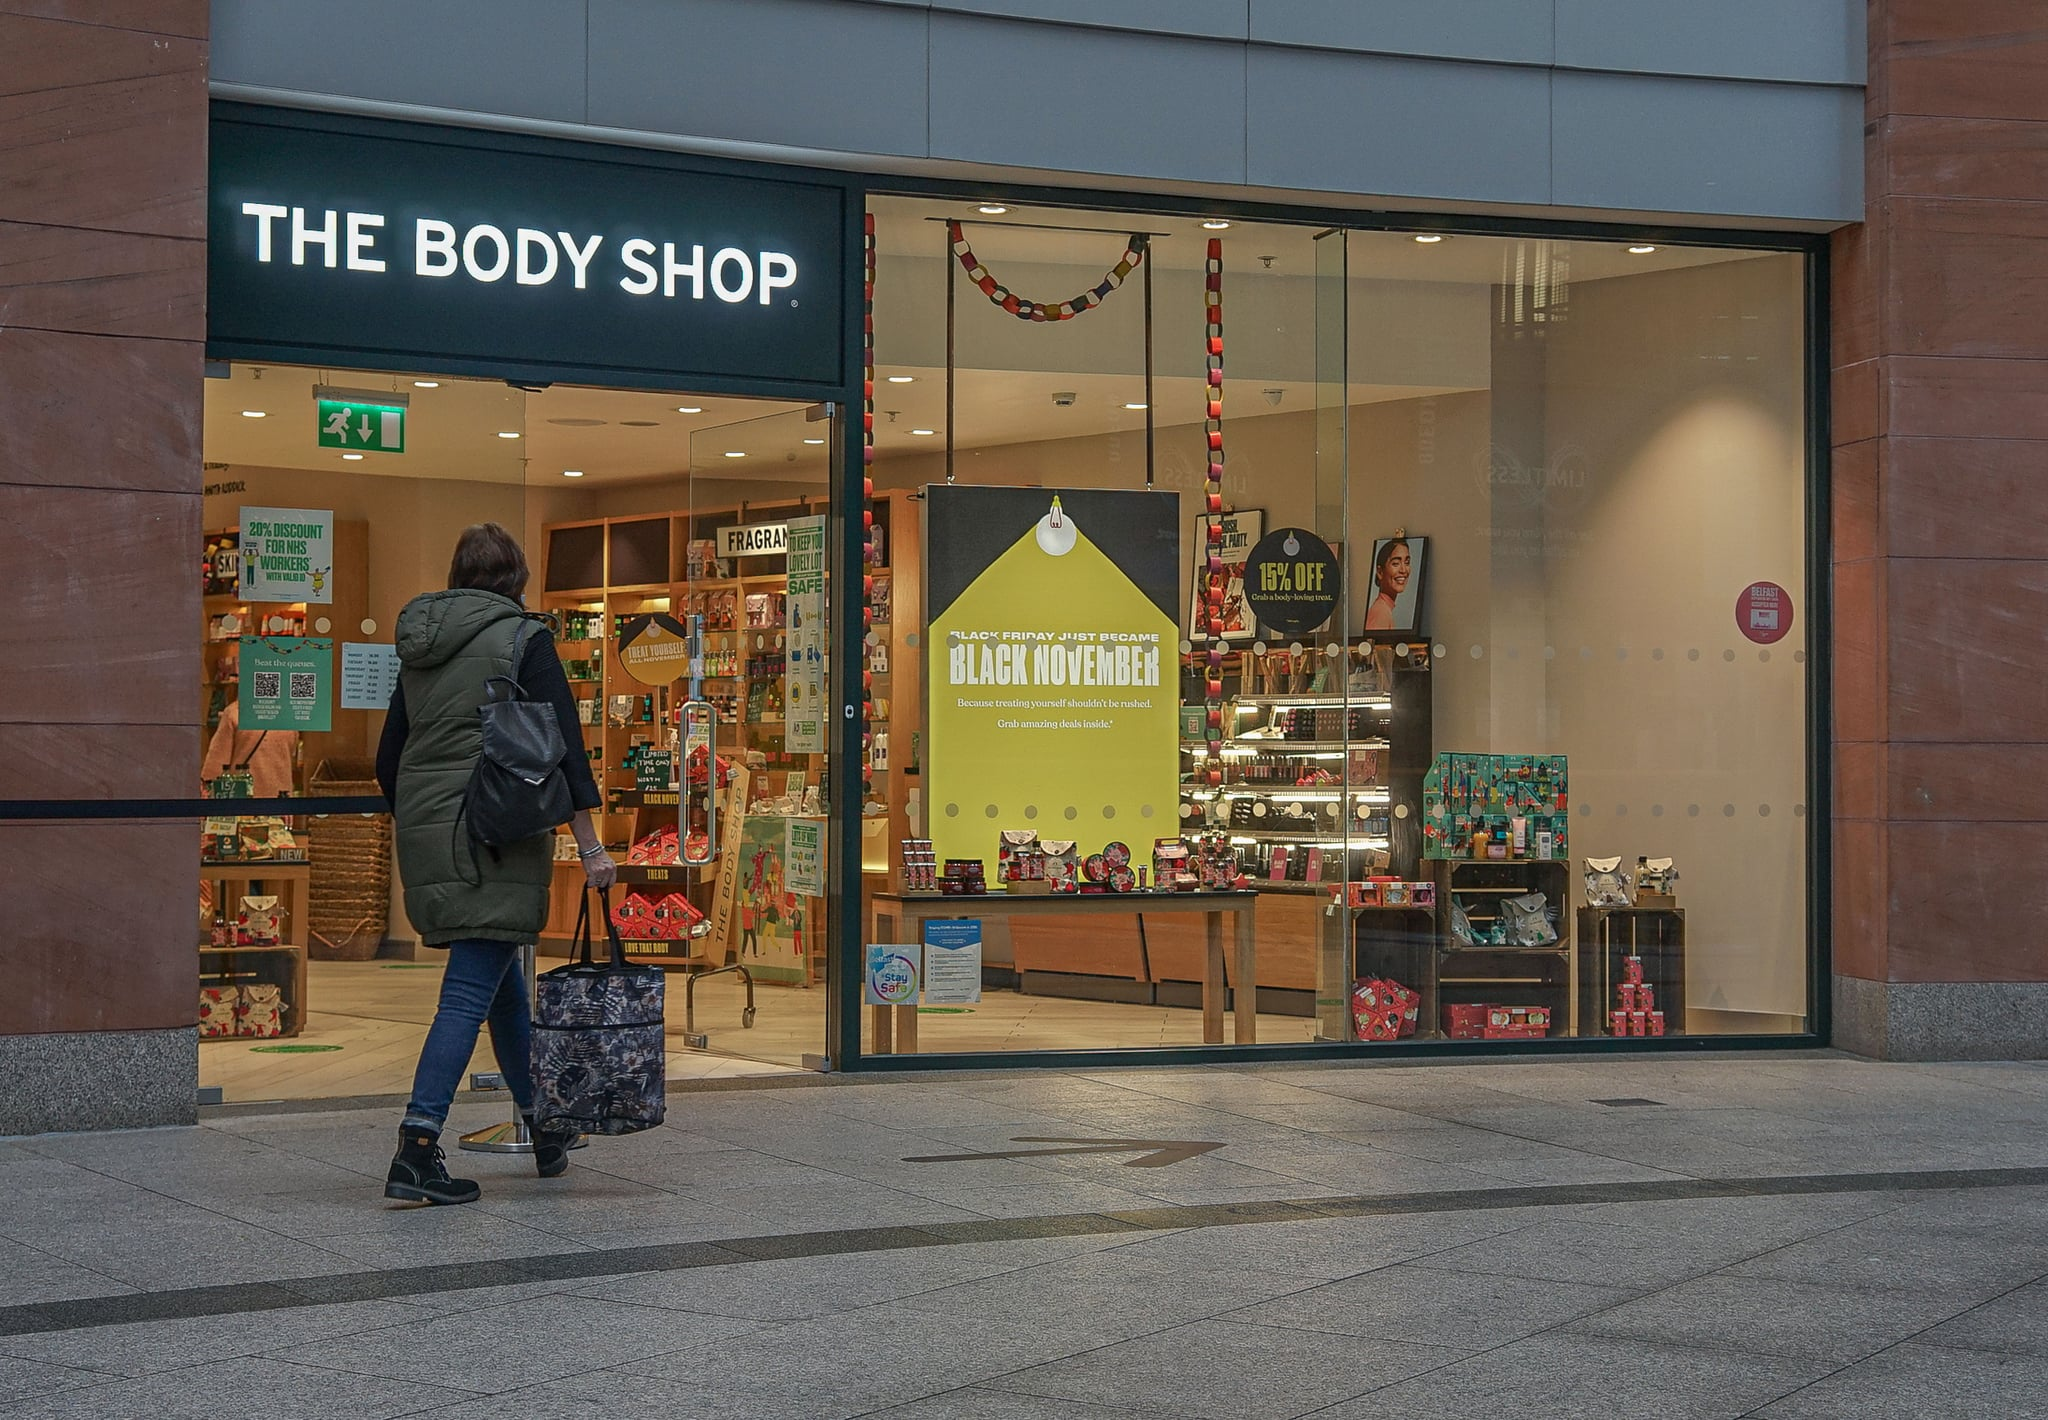 BELFAST, UNITED KINGDOM - 2020/11/16: A customer seen entering The Body Shop. (Photo by Michael McNerney/SOPA Images/LightRocket via Getty Images)